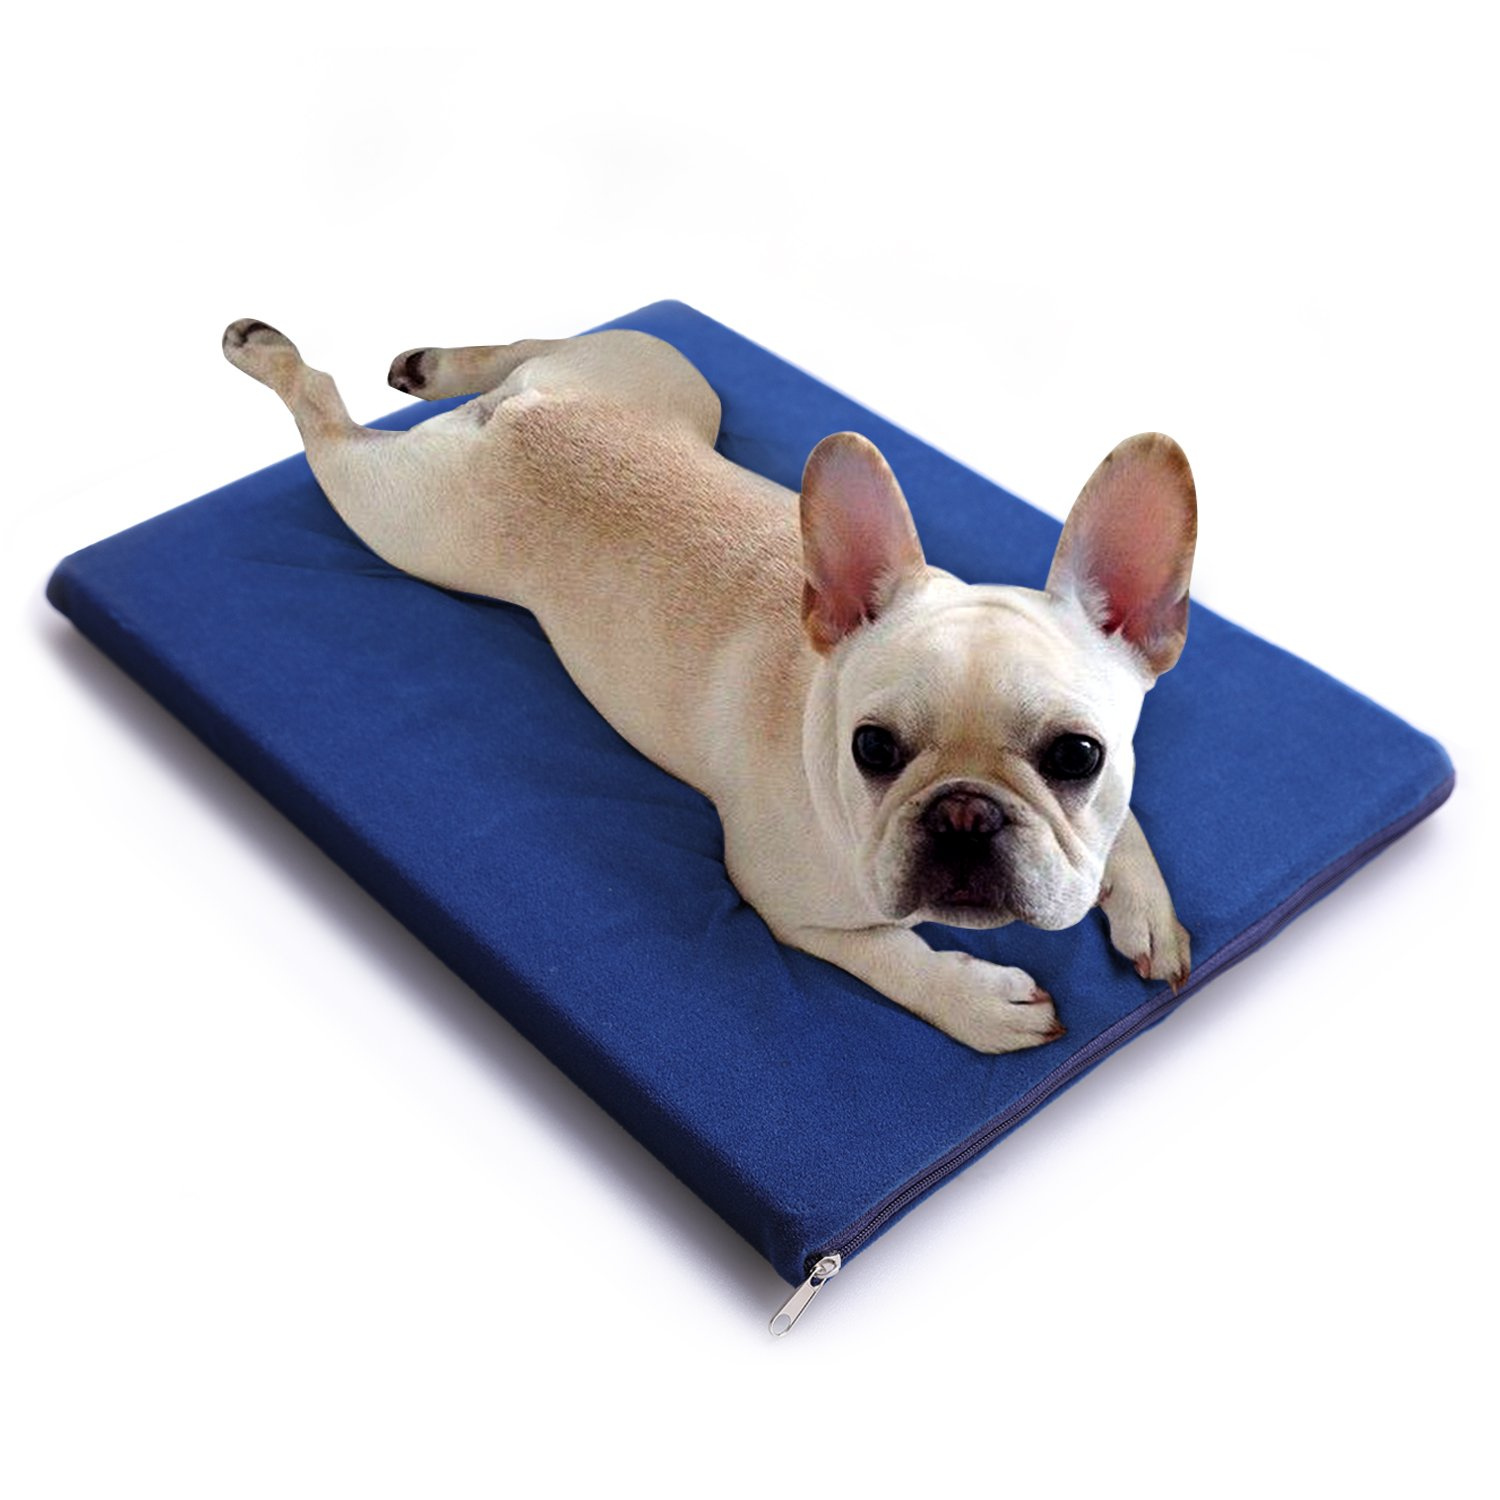 lesotc Dog Cooling Mat,Water Cooling Mats Non-Toxic